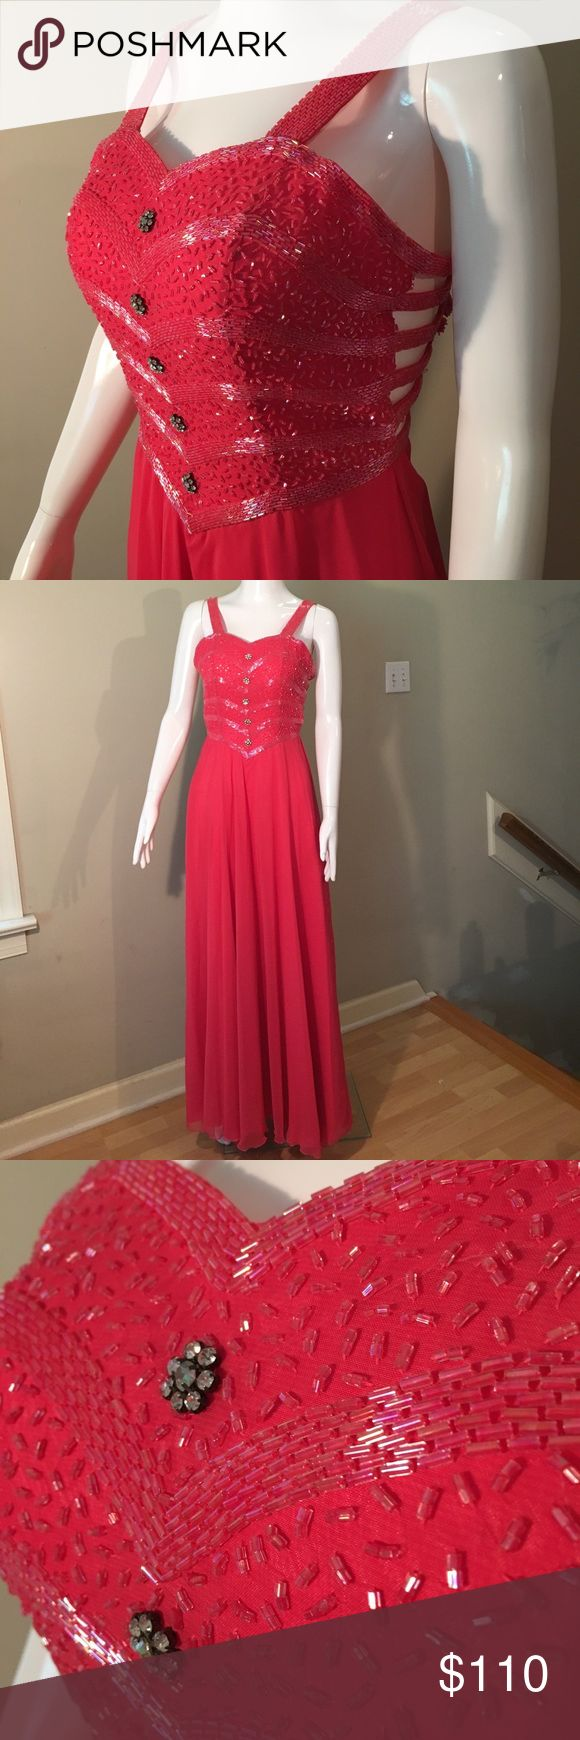 "Gorgeous beaded floral formal dress Gorgeous beaded floral formal dress in a vibrant coral. Size 4. Mannequin isn't quite small or squishy enough to do up the back but it is stunning. Armpit to armpit is 15.5"", waist at smallest is 12.5"", length from center of sweetheart neckline is 50"". Dresses"